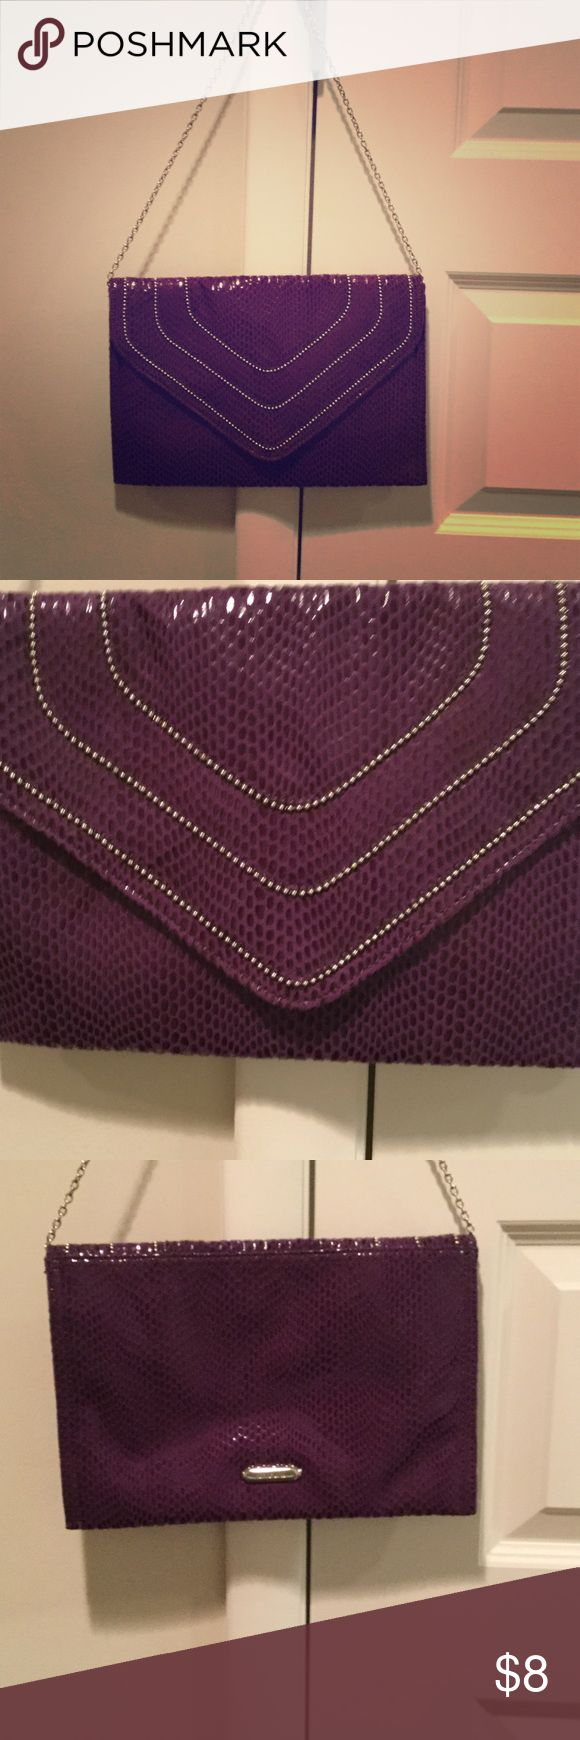 Purple clutch Purple clutch Bags